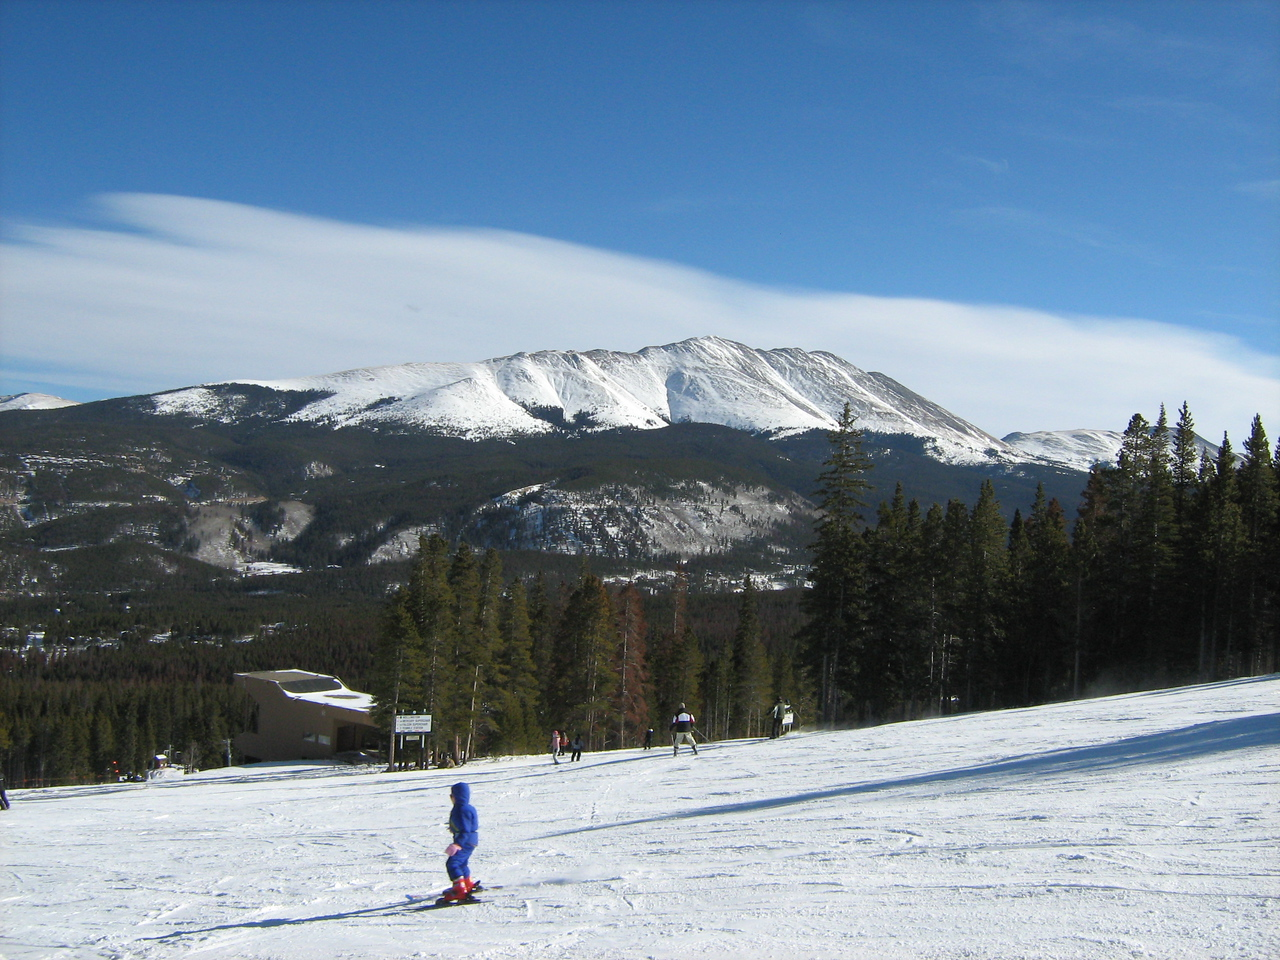 2009 Ski Vacation - Breckenridge 12-21-2009 1-48-47 PM